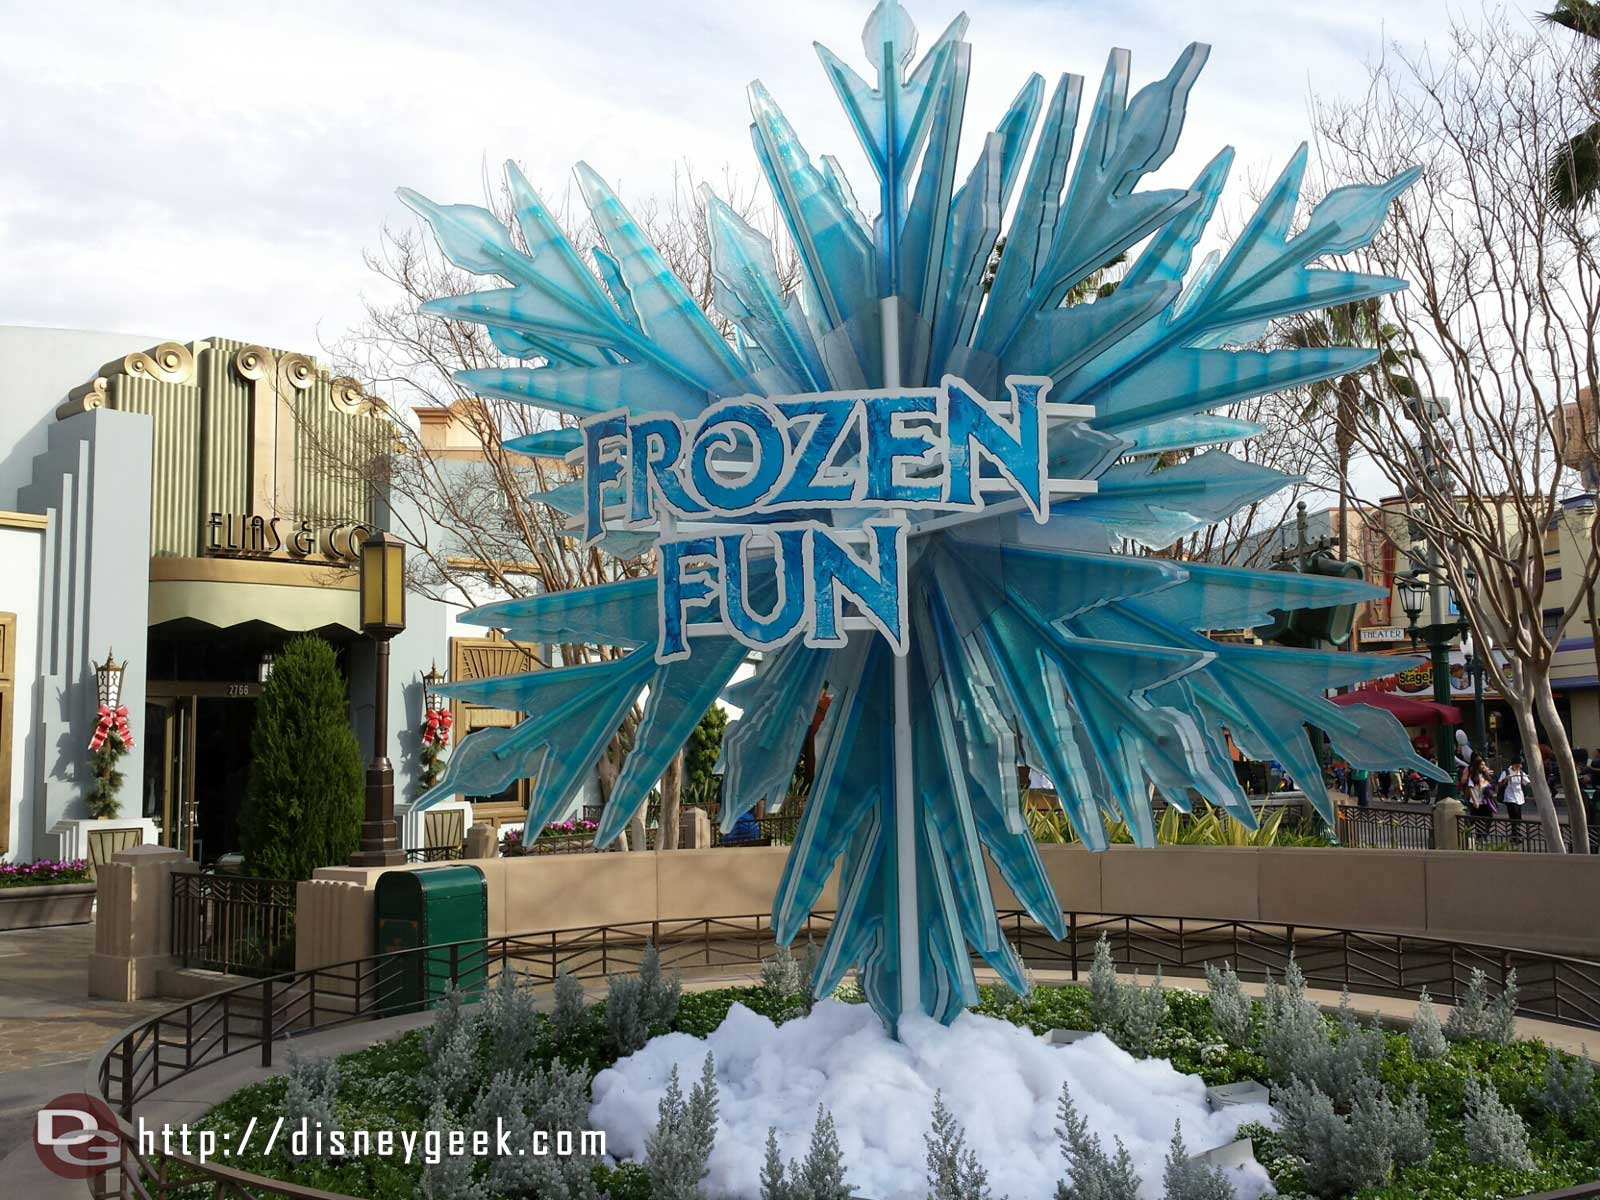 Christmas is gone and #FrozenFun has taken the tree's spot on #BuenaVistaStreet